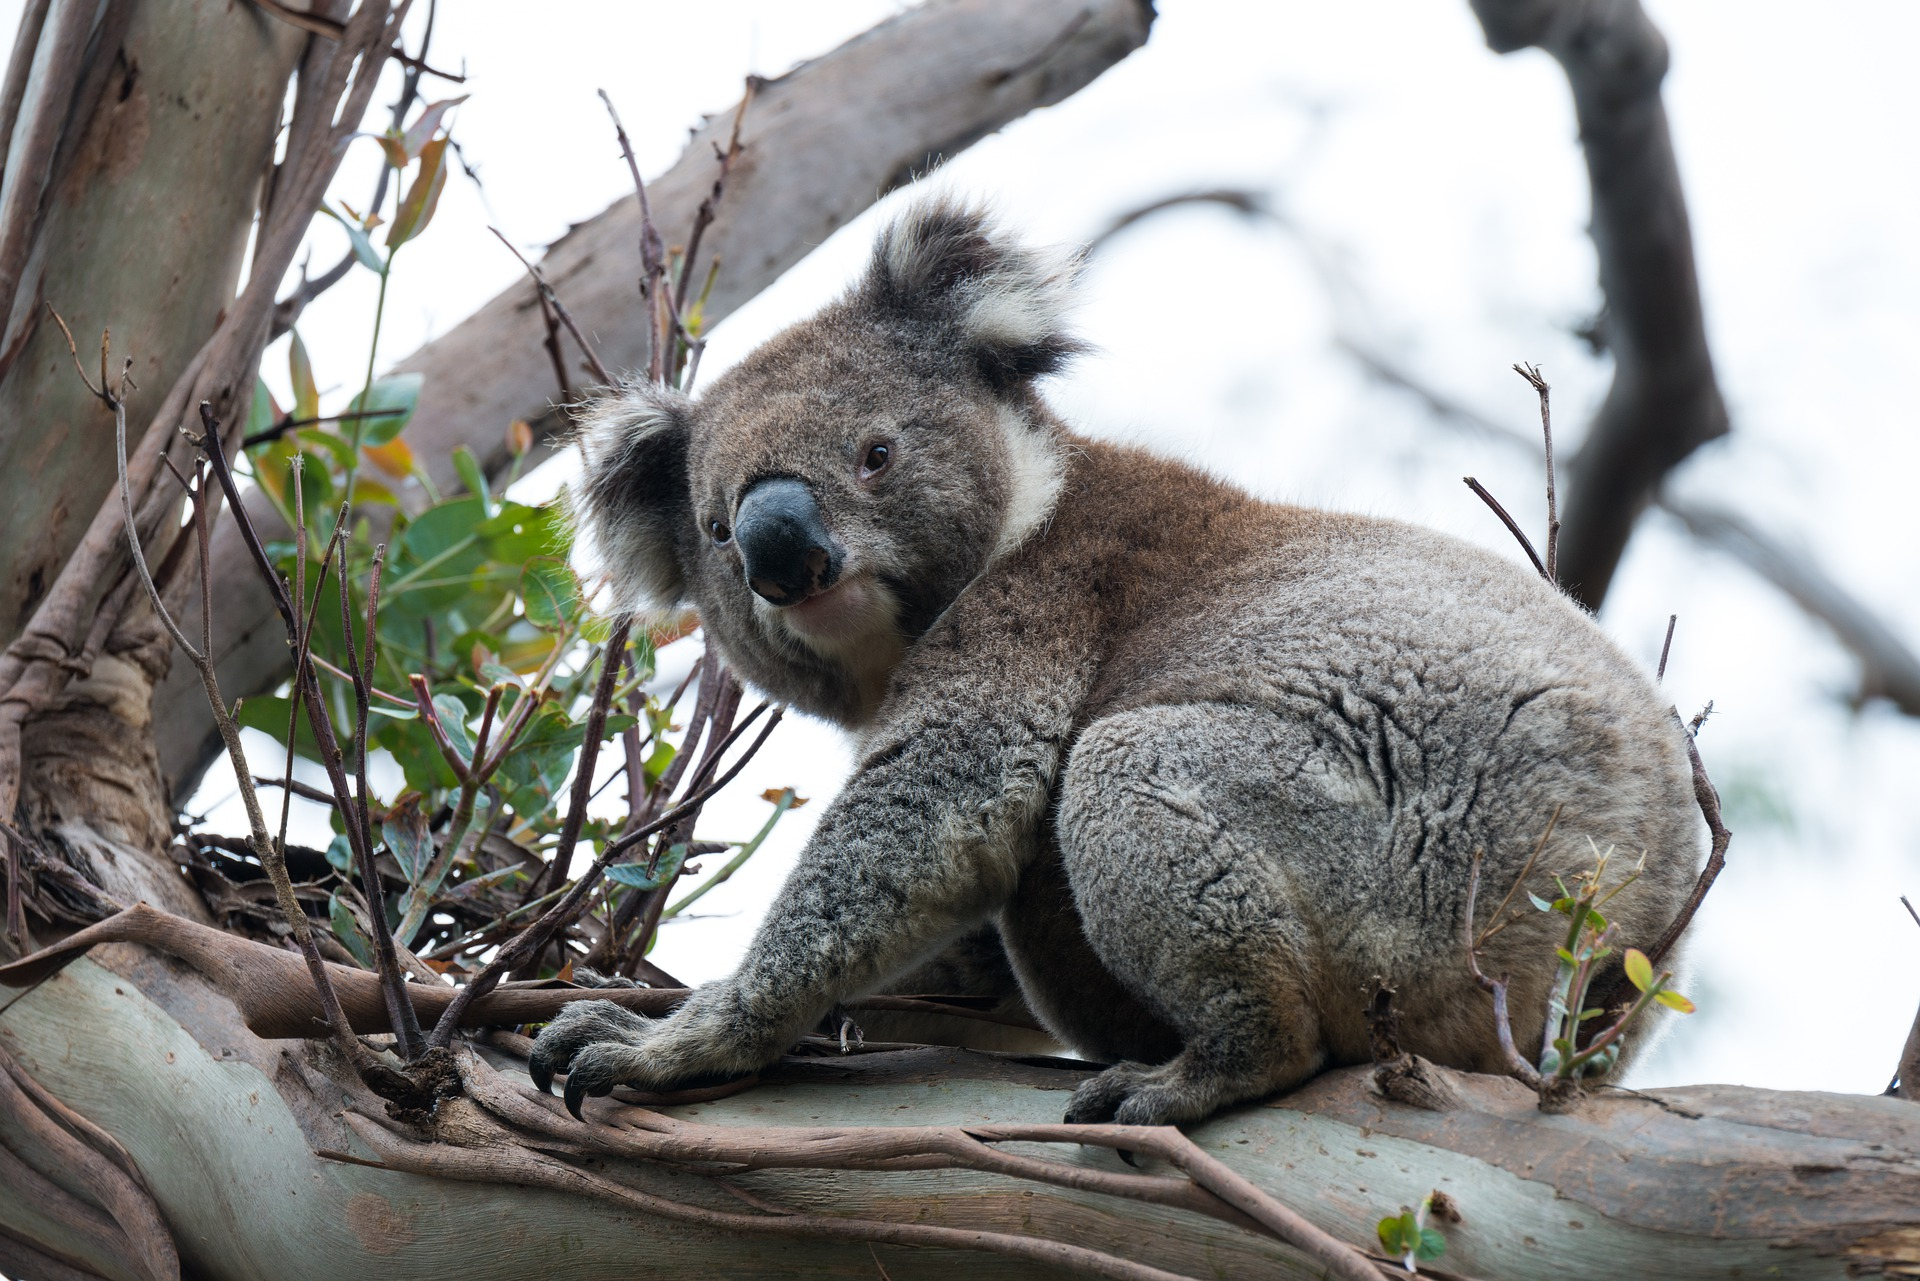 Featured image: Yes, koalas are cute – but should we bring them to NZ? Errm, no